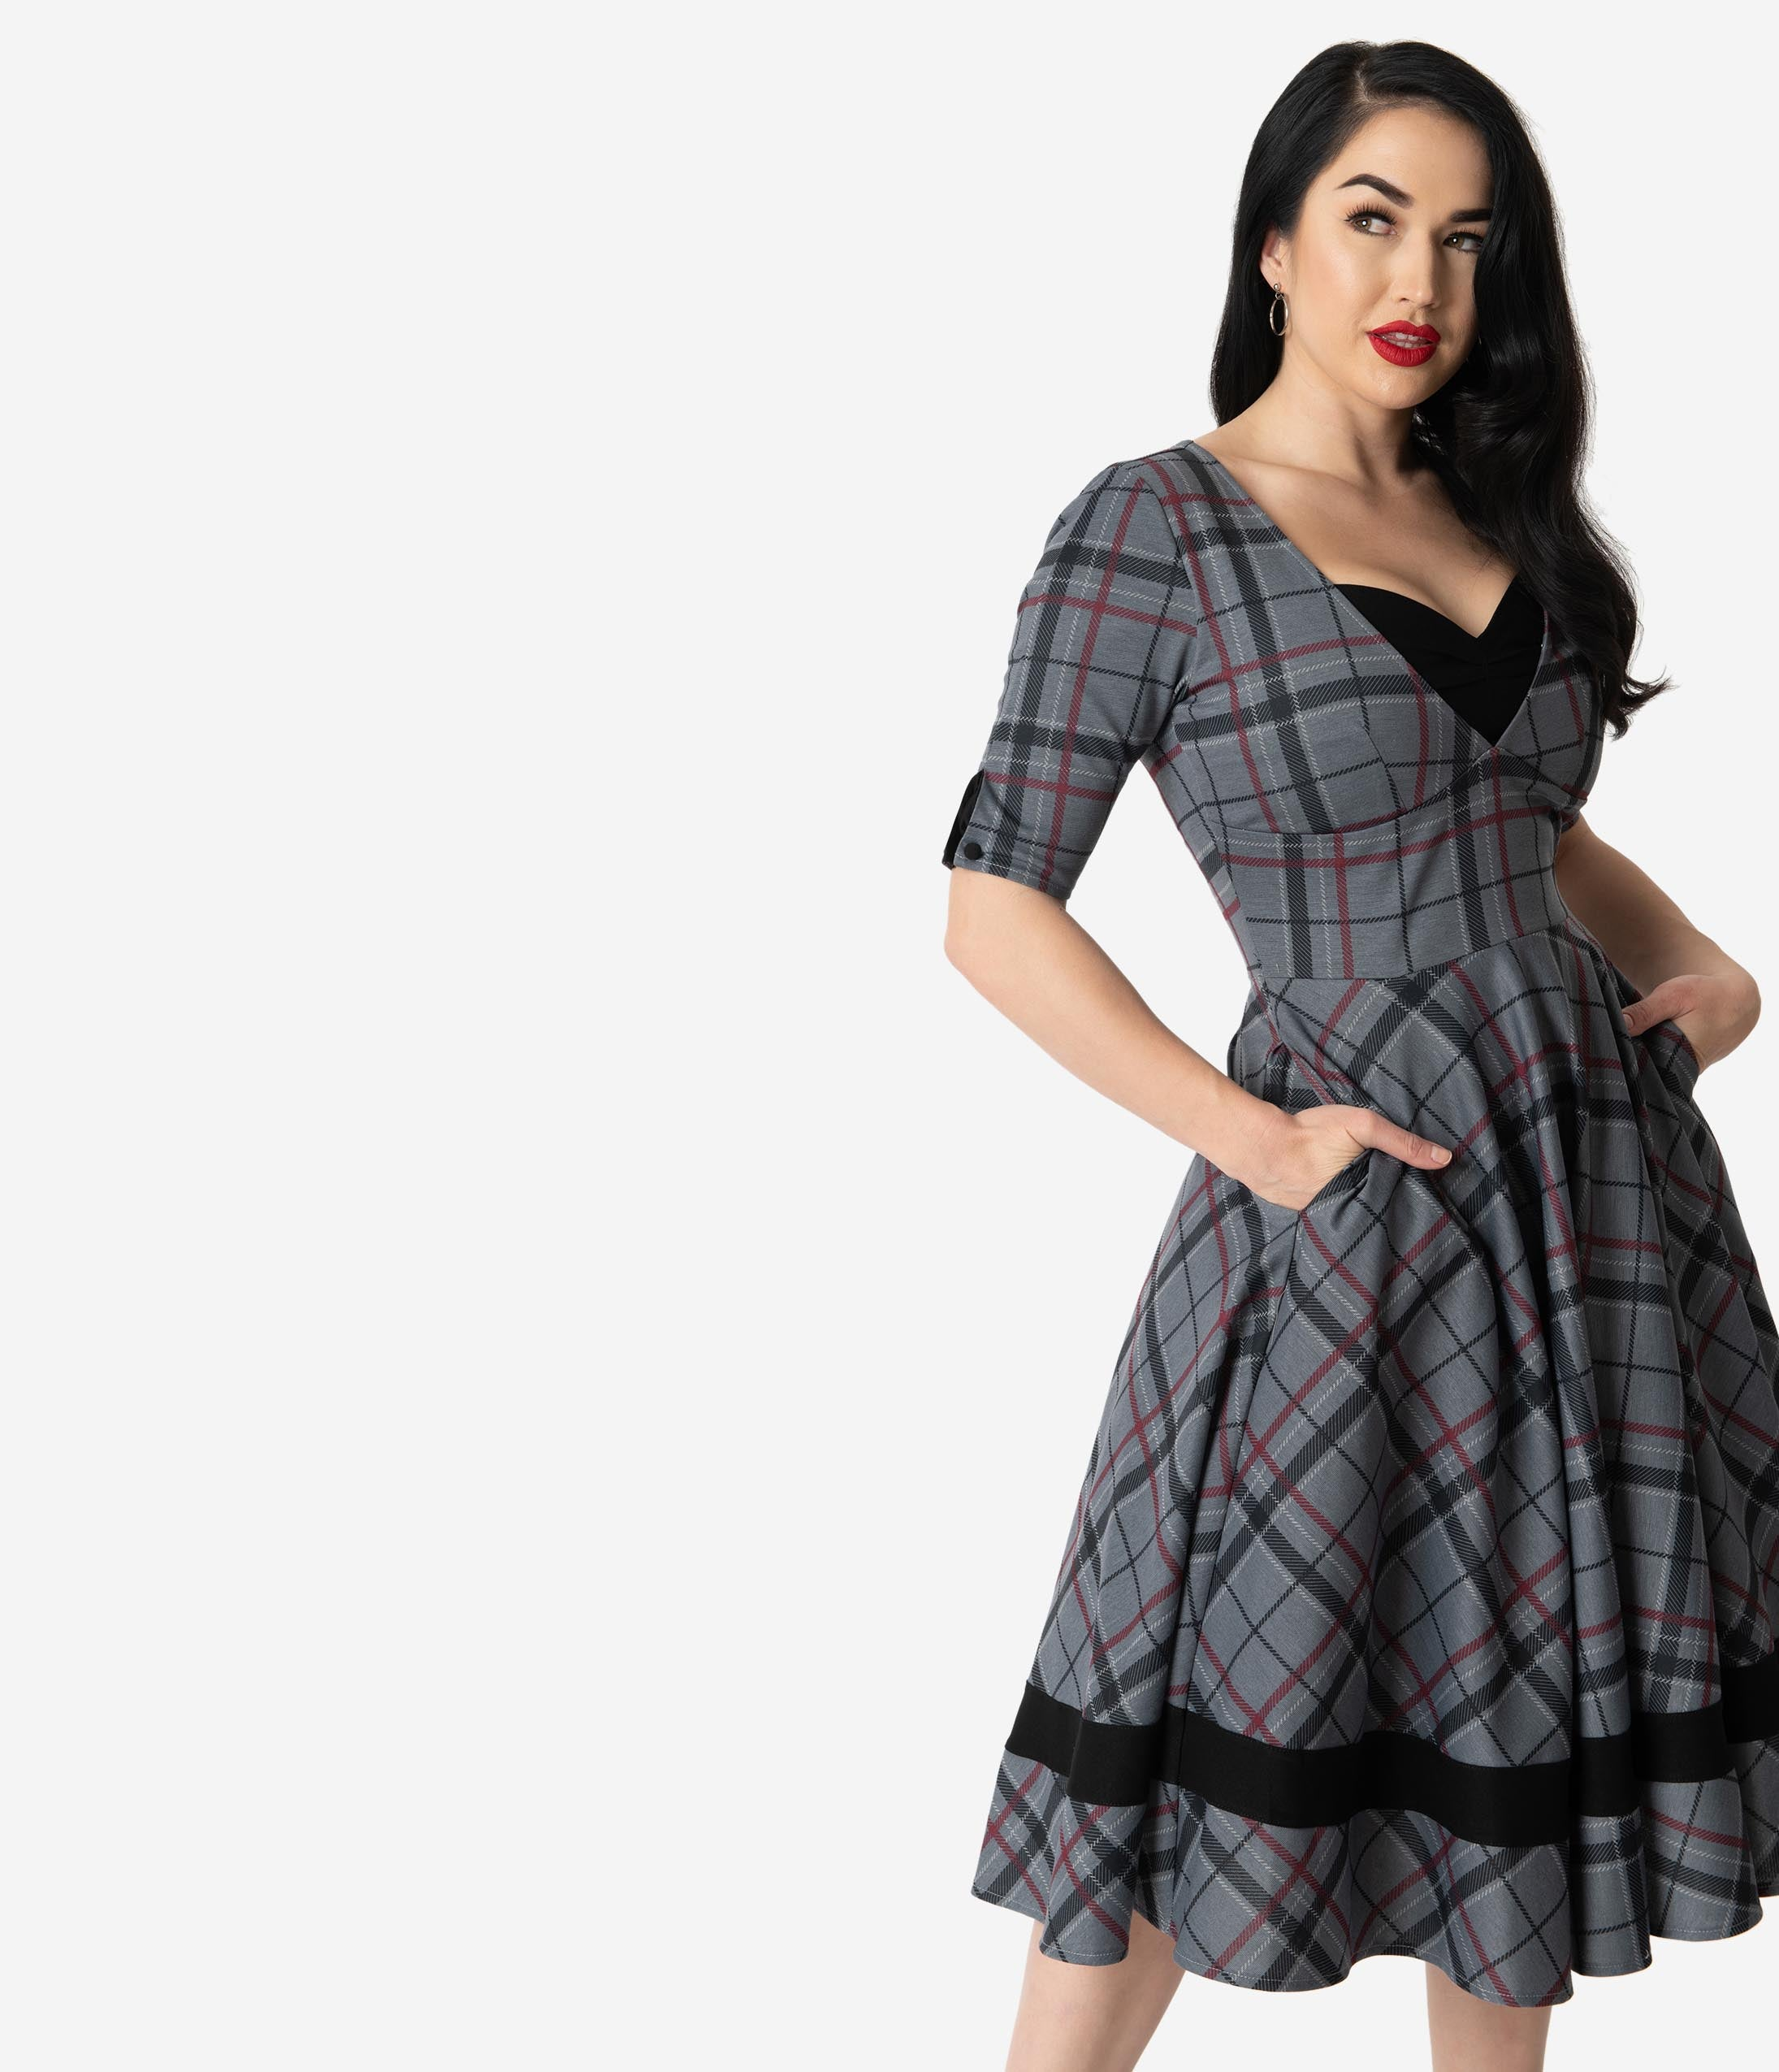 Fifties Dresses : 1950s Style Swing to Wiggle Dresses Unique Vintage 1950S Style Black  Grey Plaid Sleeved Serena Swing Dress $110.00 AT vintagedancer.com